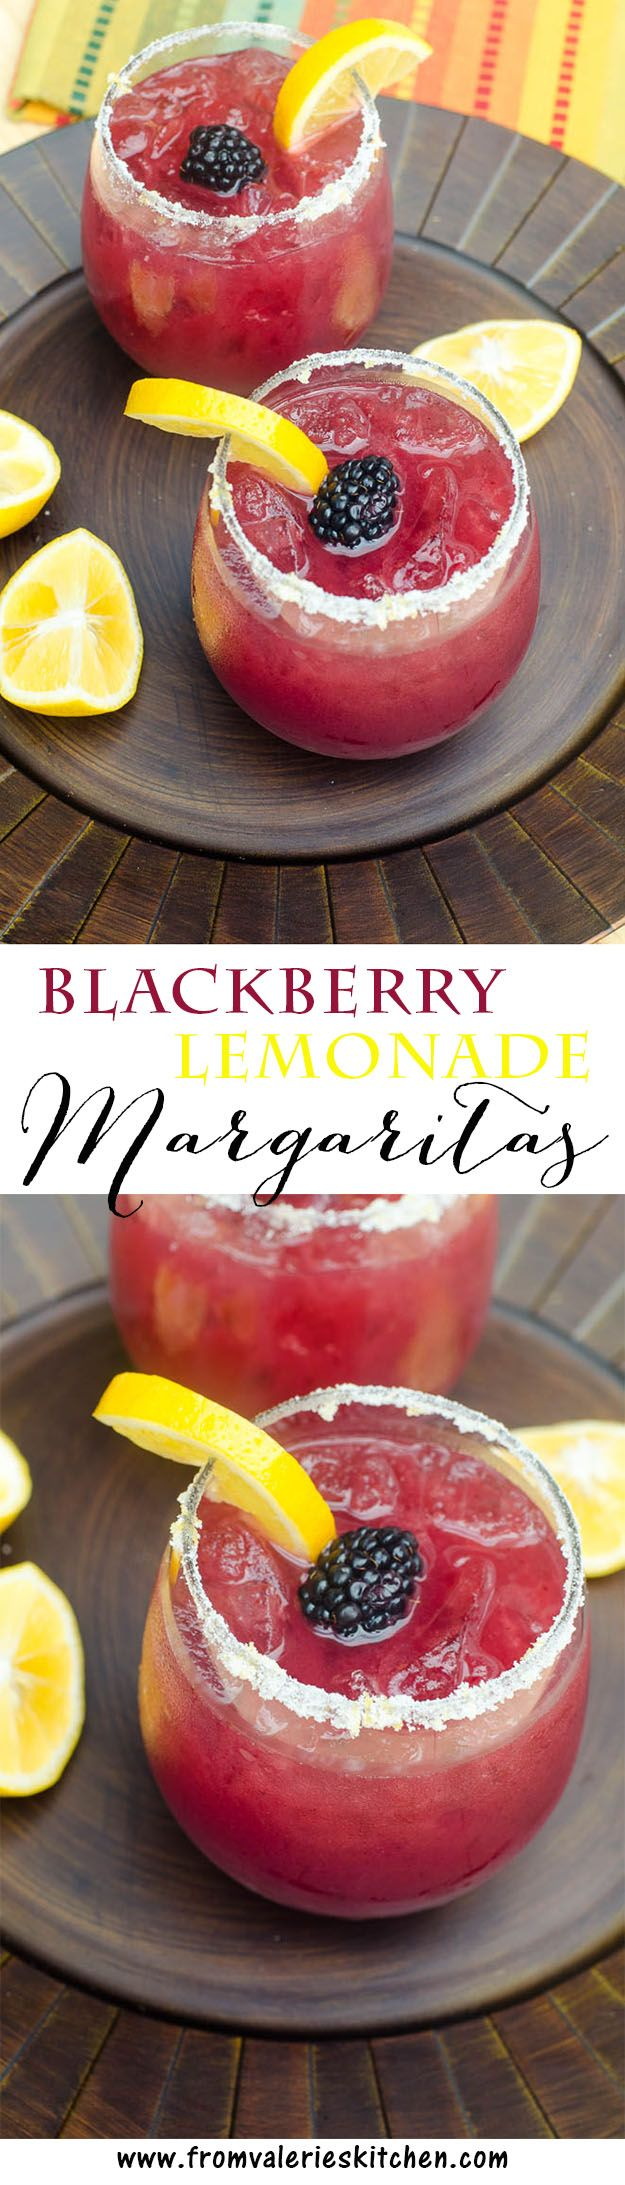 Tart, lightly sweet, and delicious. A great warm weather party drink! ~ #cincodemayo #tequila #margarita